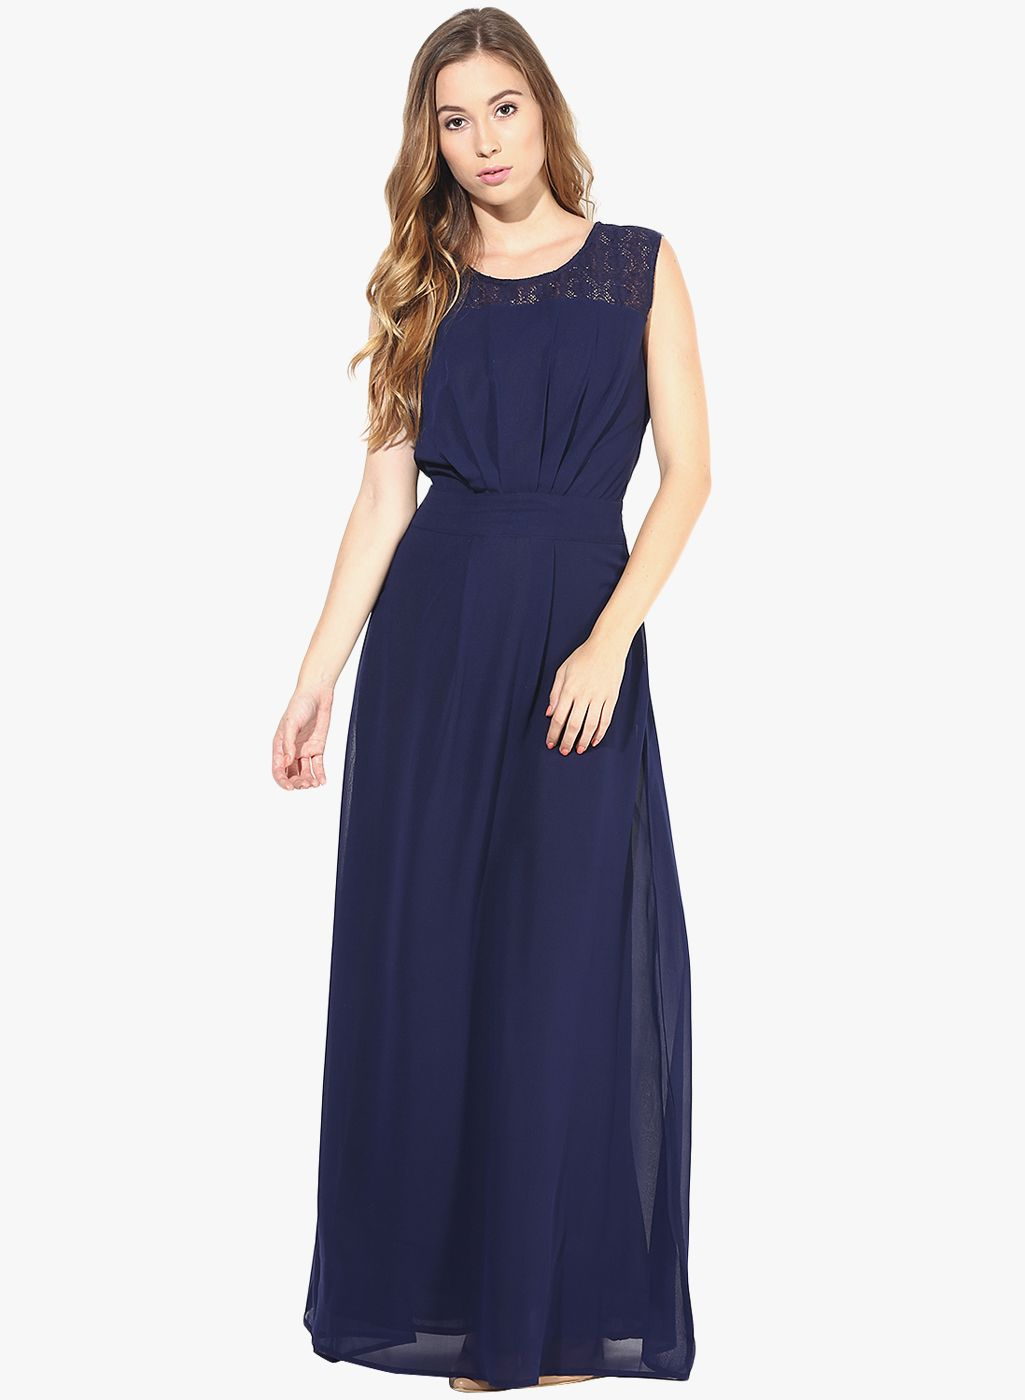 4566c31f546f Buy La Zoire Navy Blue Colored Solid Maxi Dress for Women Online India